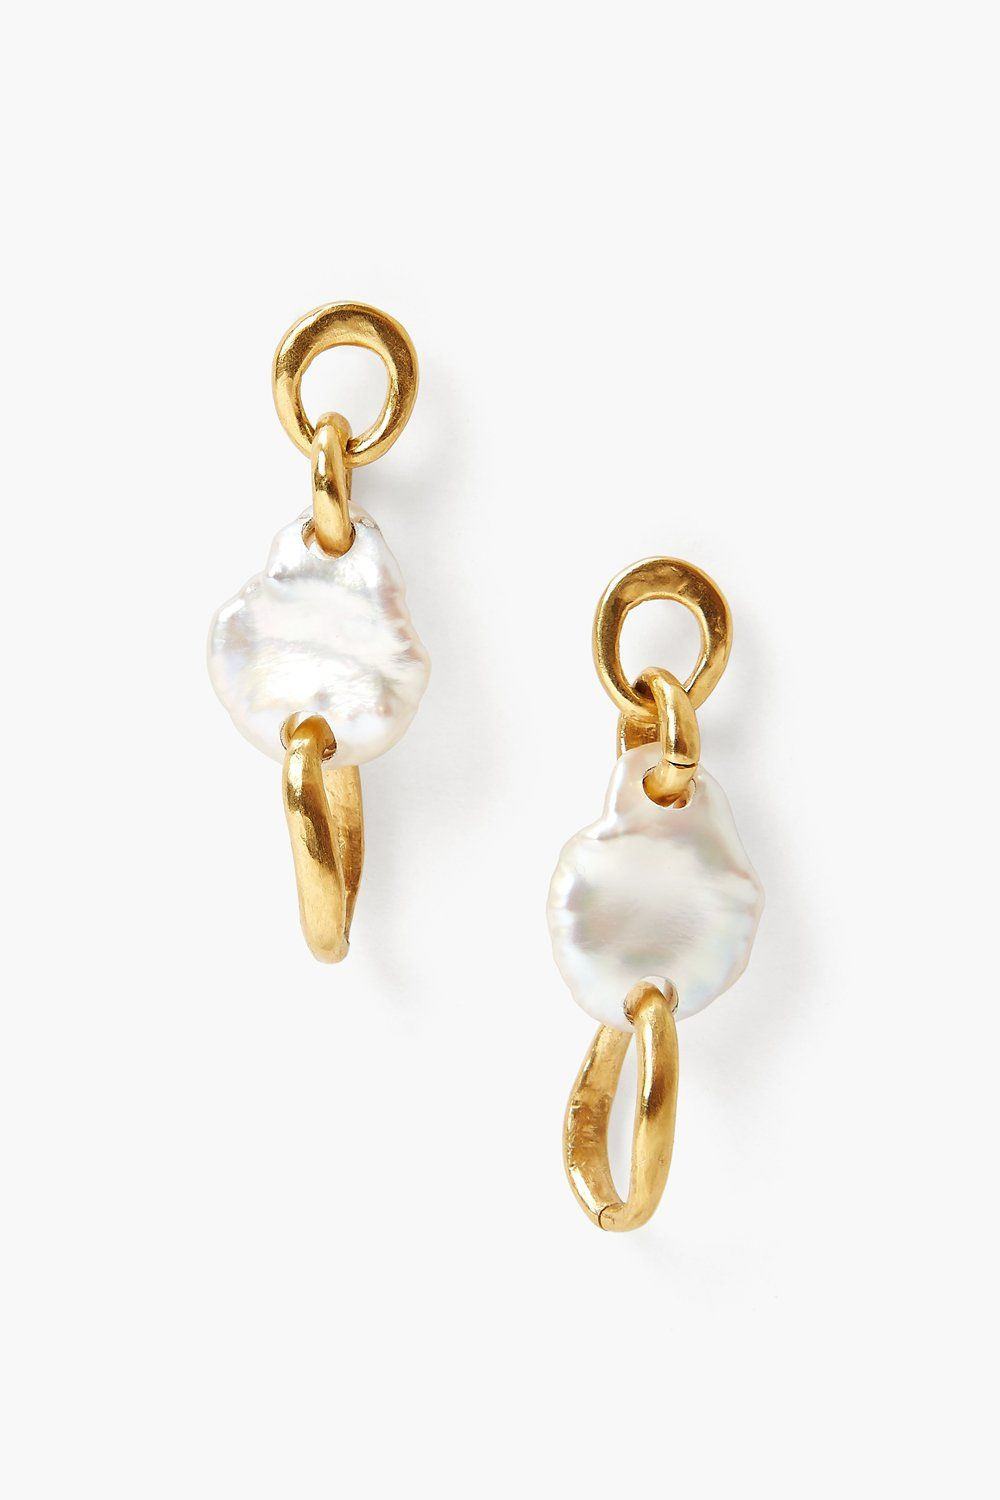 White Pearl Gold Chain Link Earrings